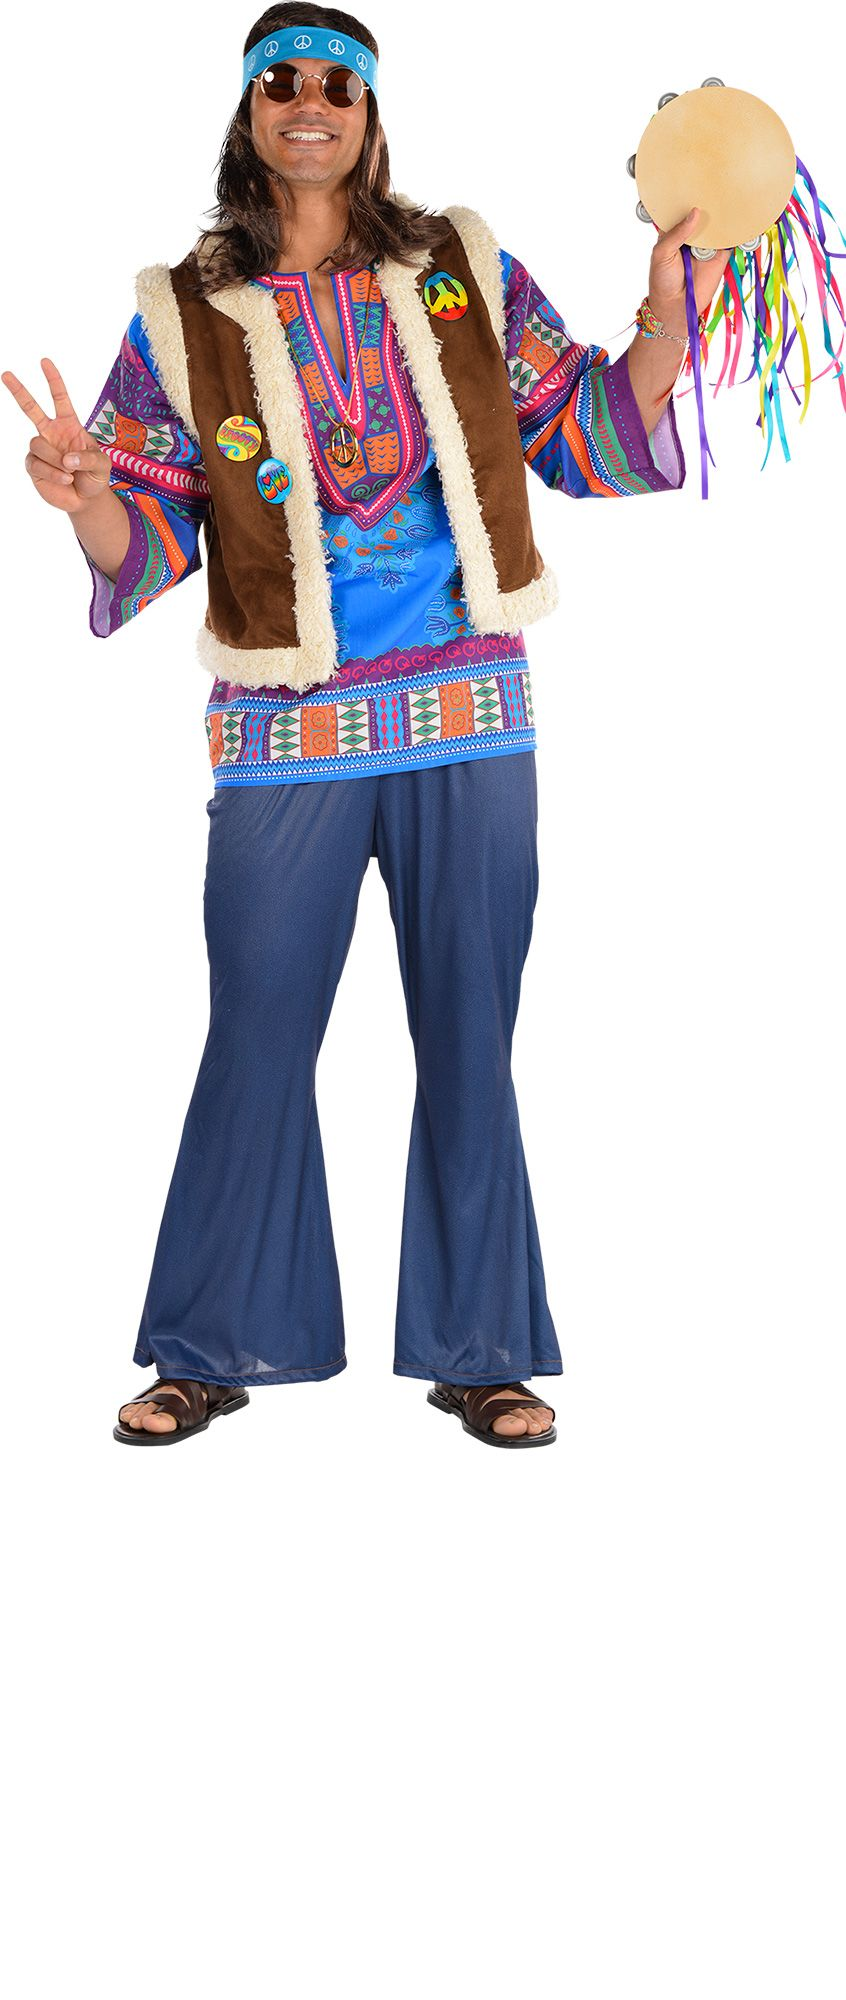 Make Your Costume - 60s Mens Hippie #1